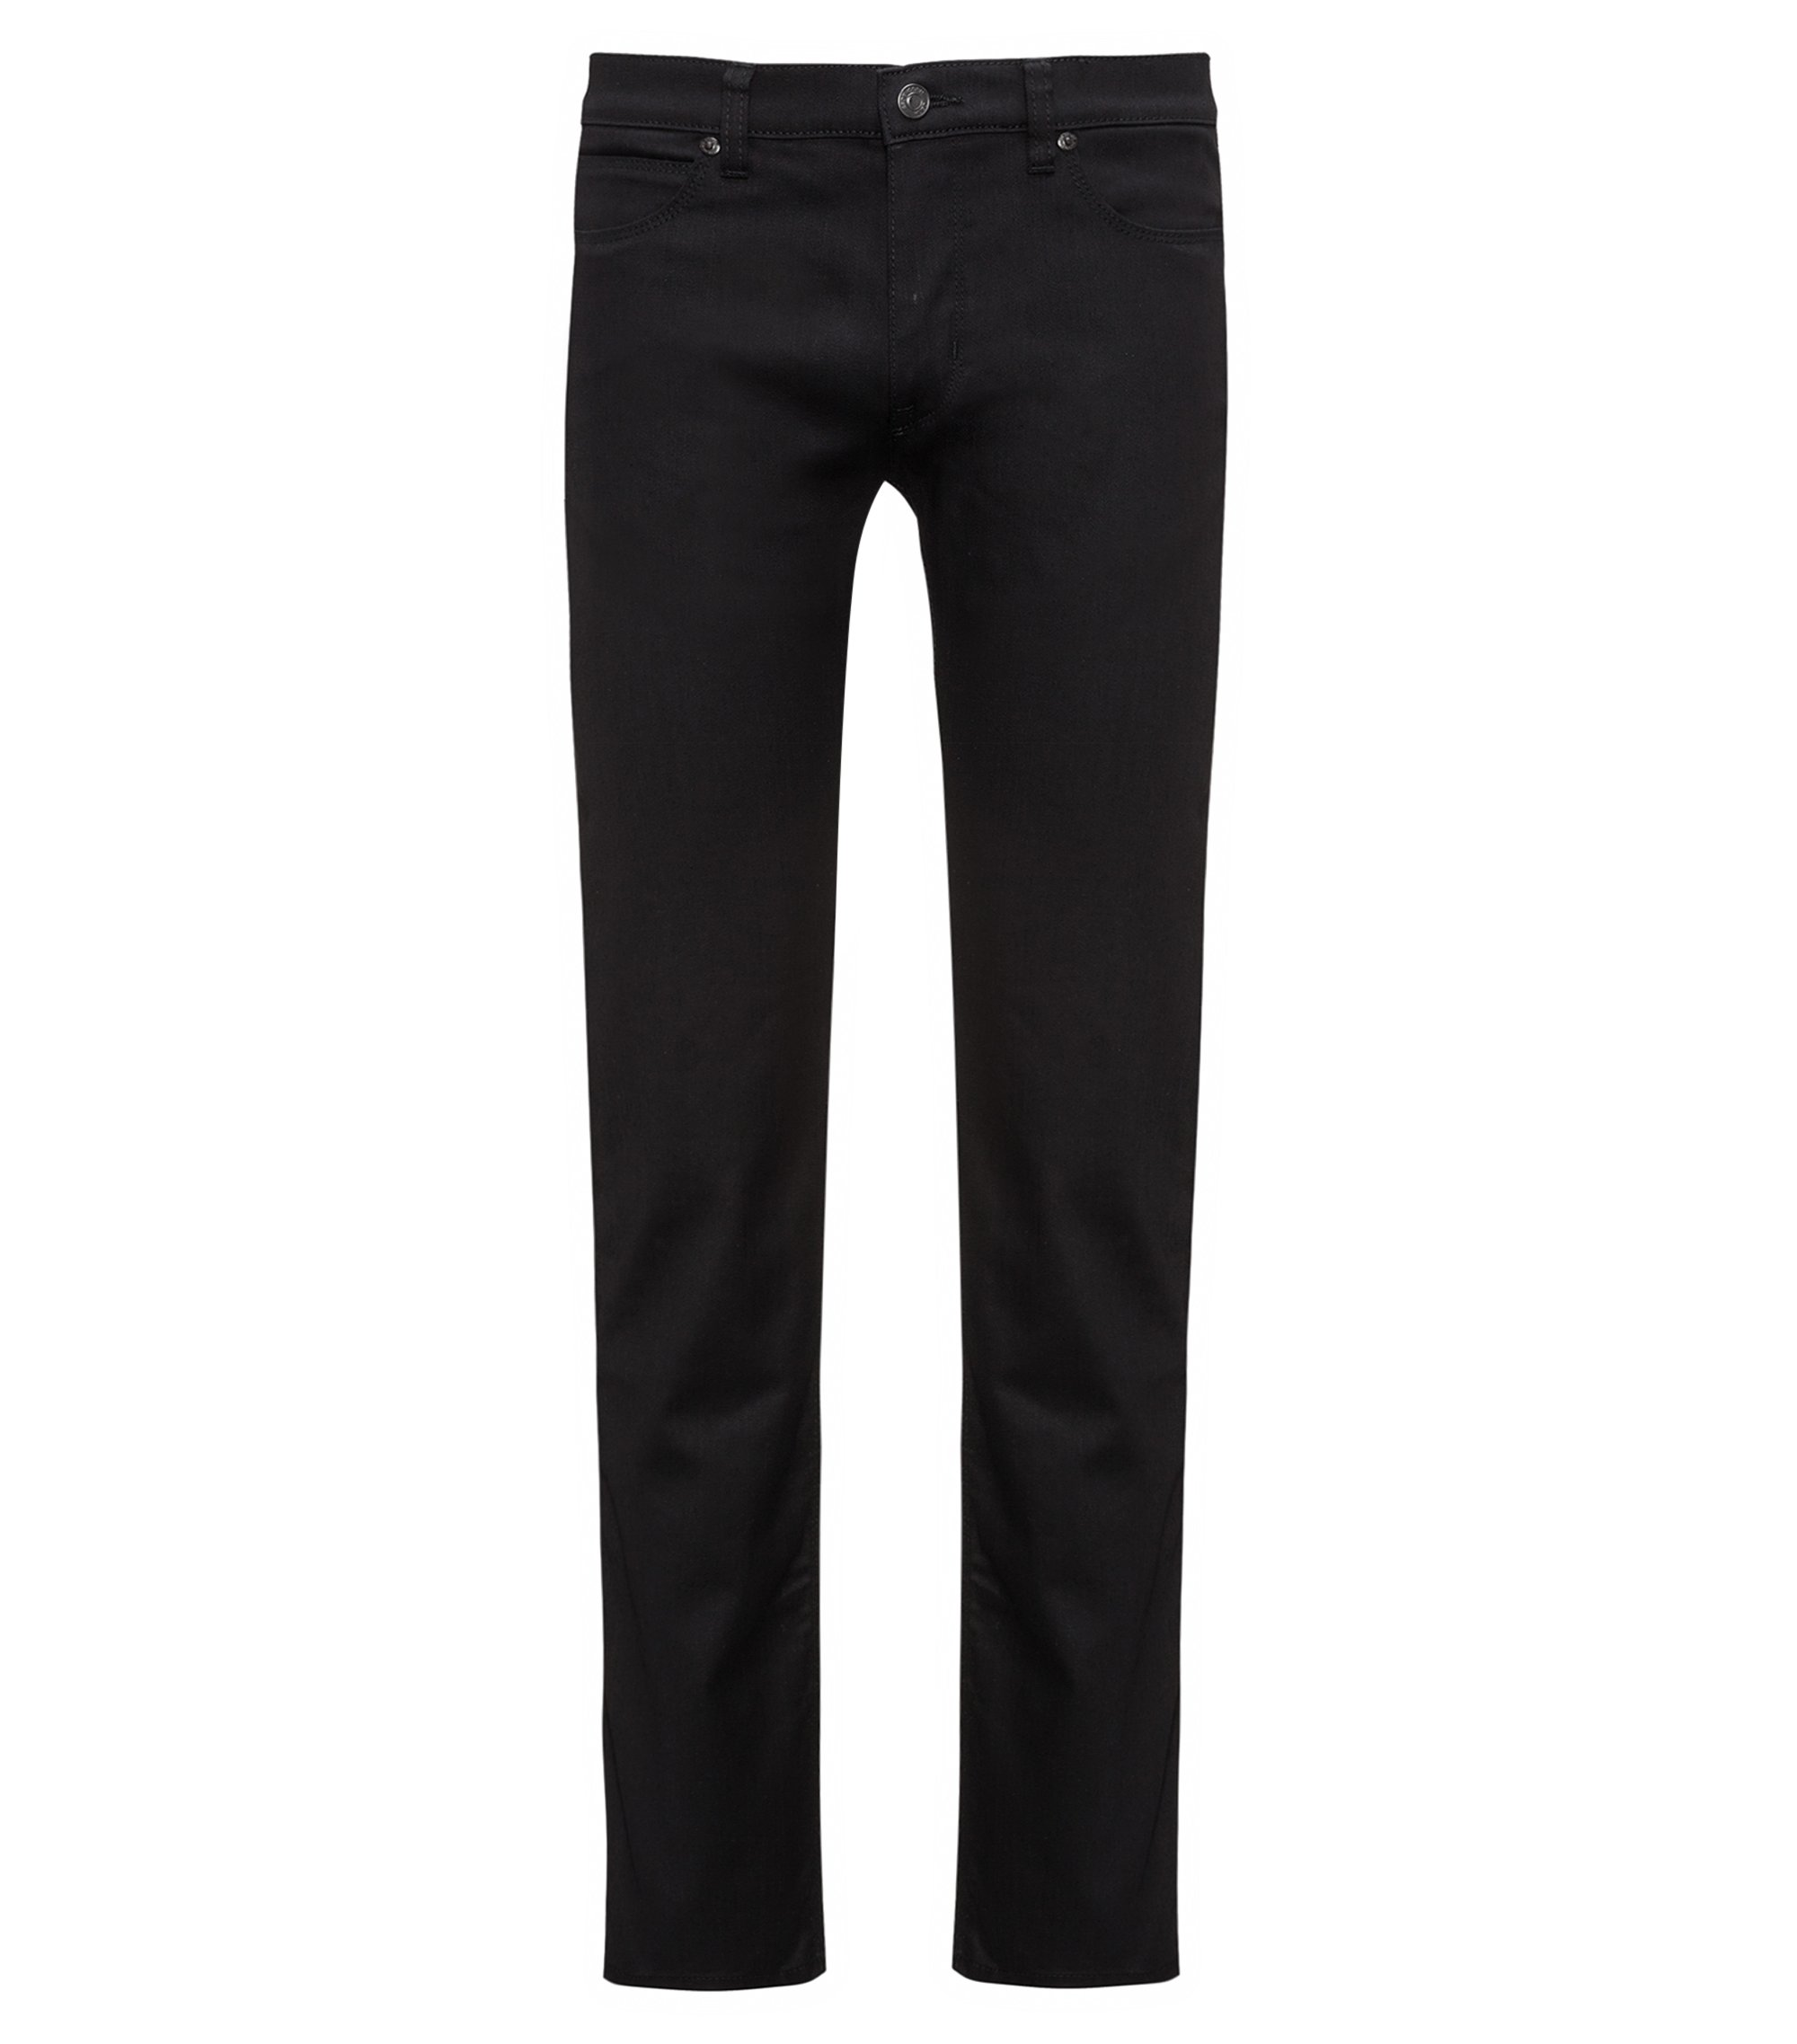 Jeans HUGO Homme Slim Fit en denim Stay Black, Noir